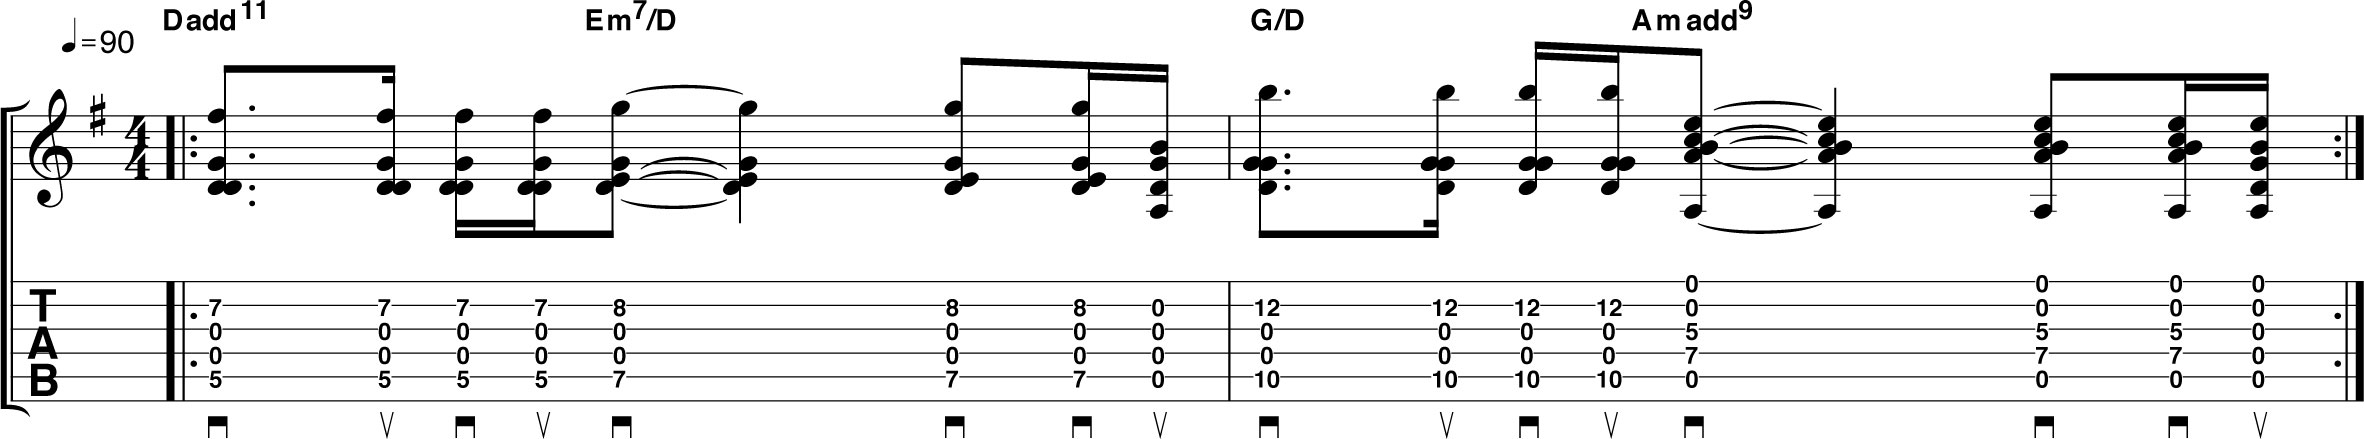 mid-neck-chords